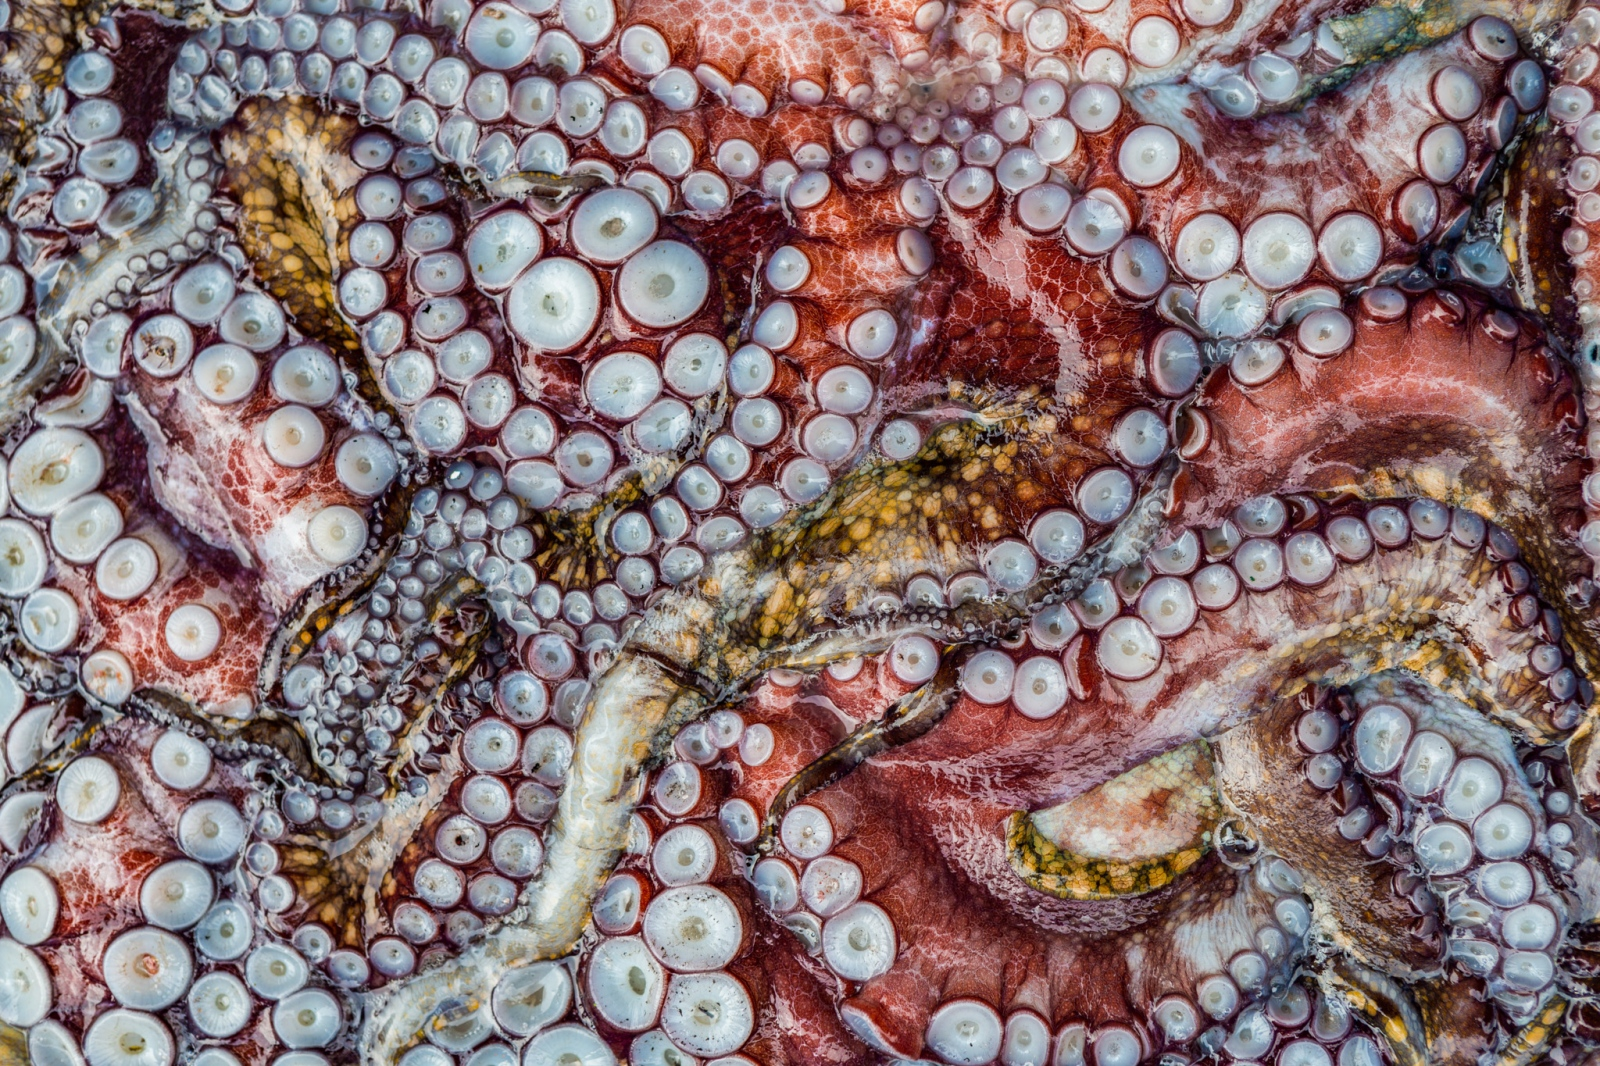 Octopus in a fish market in Ancón, Peru. From a personal project on new models in fisheries management.